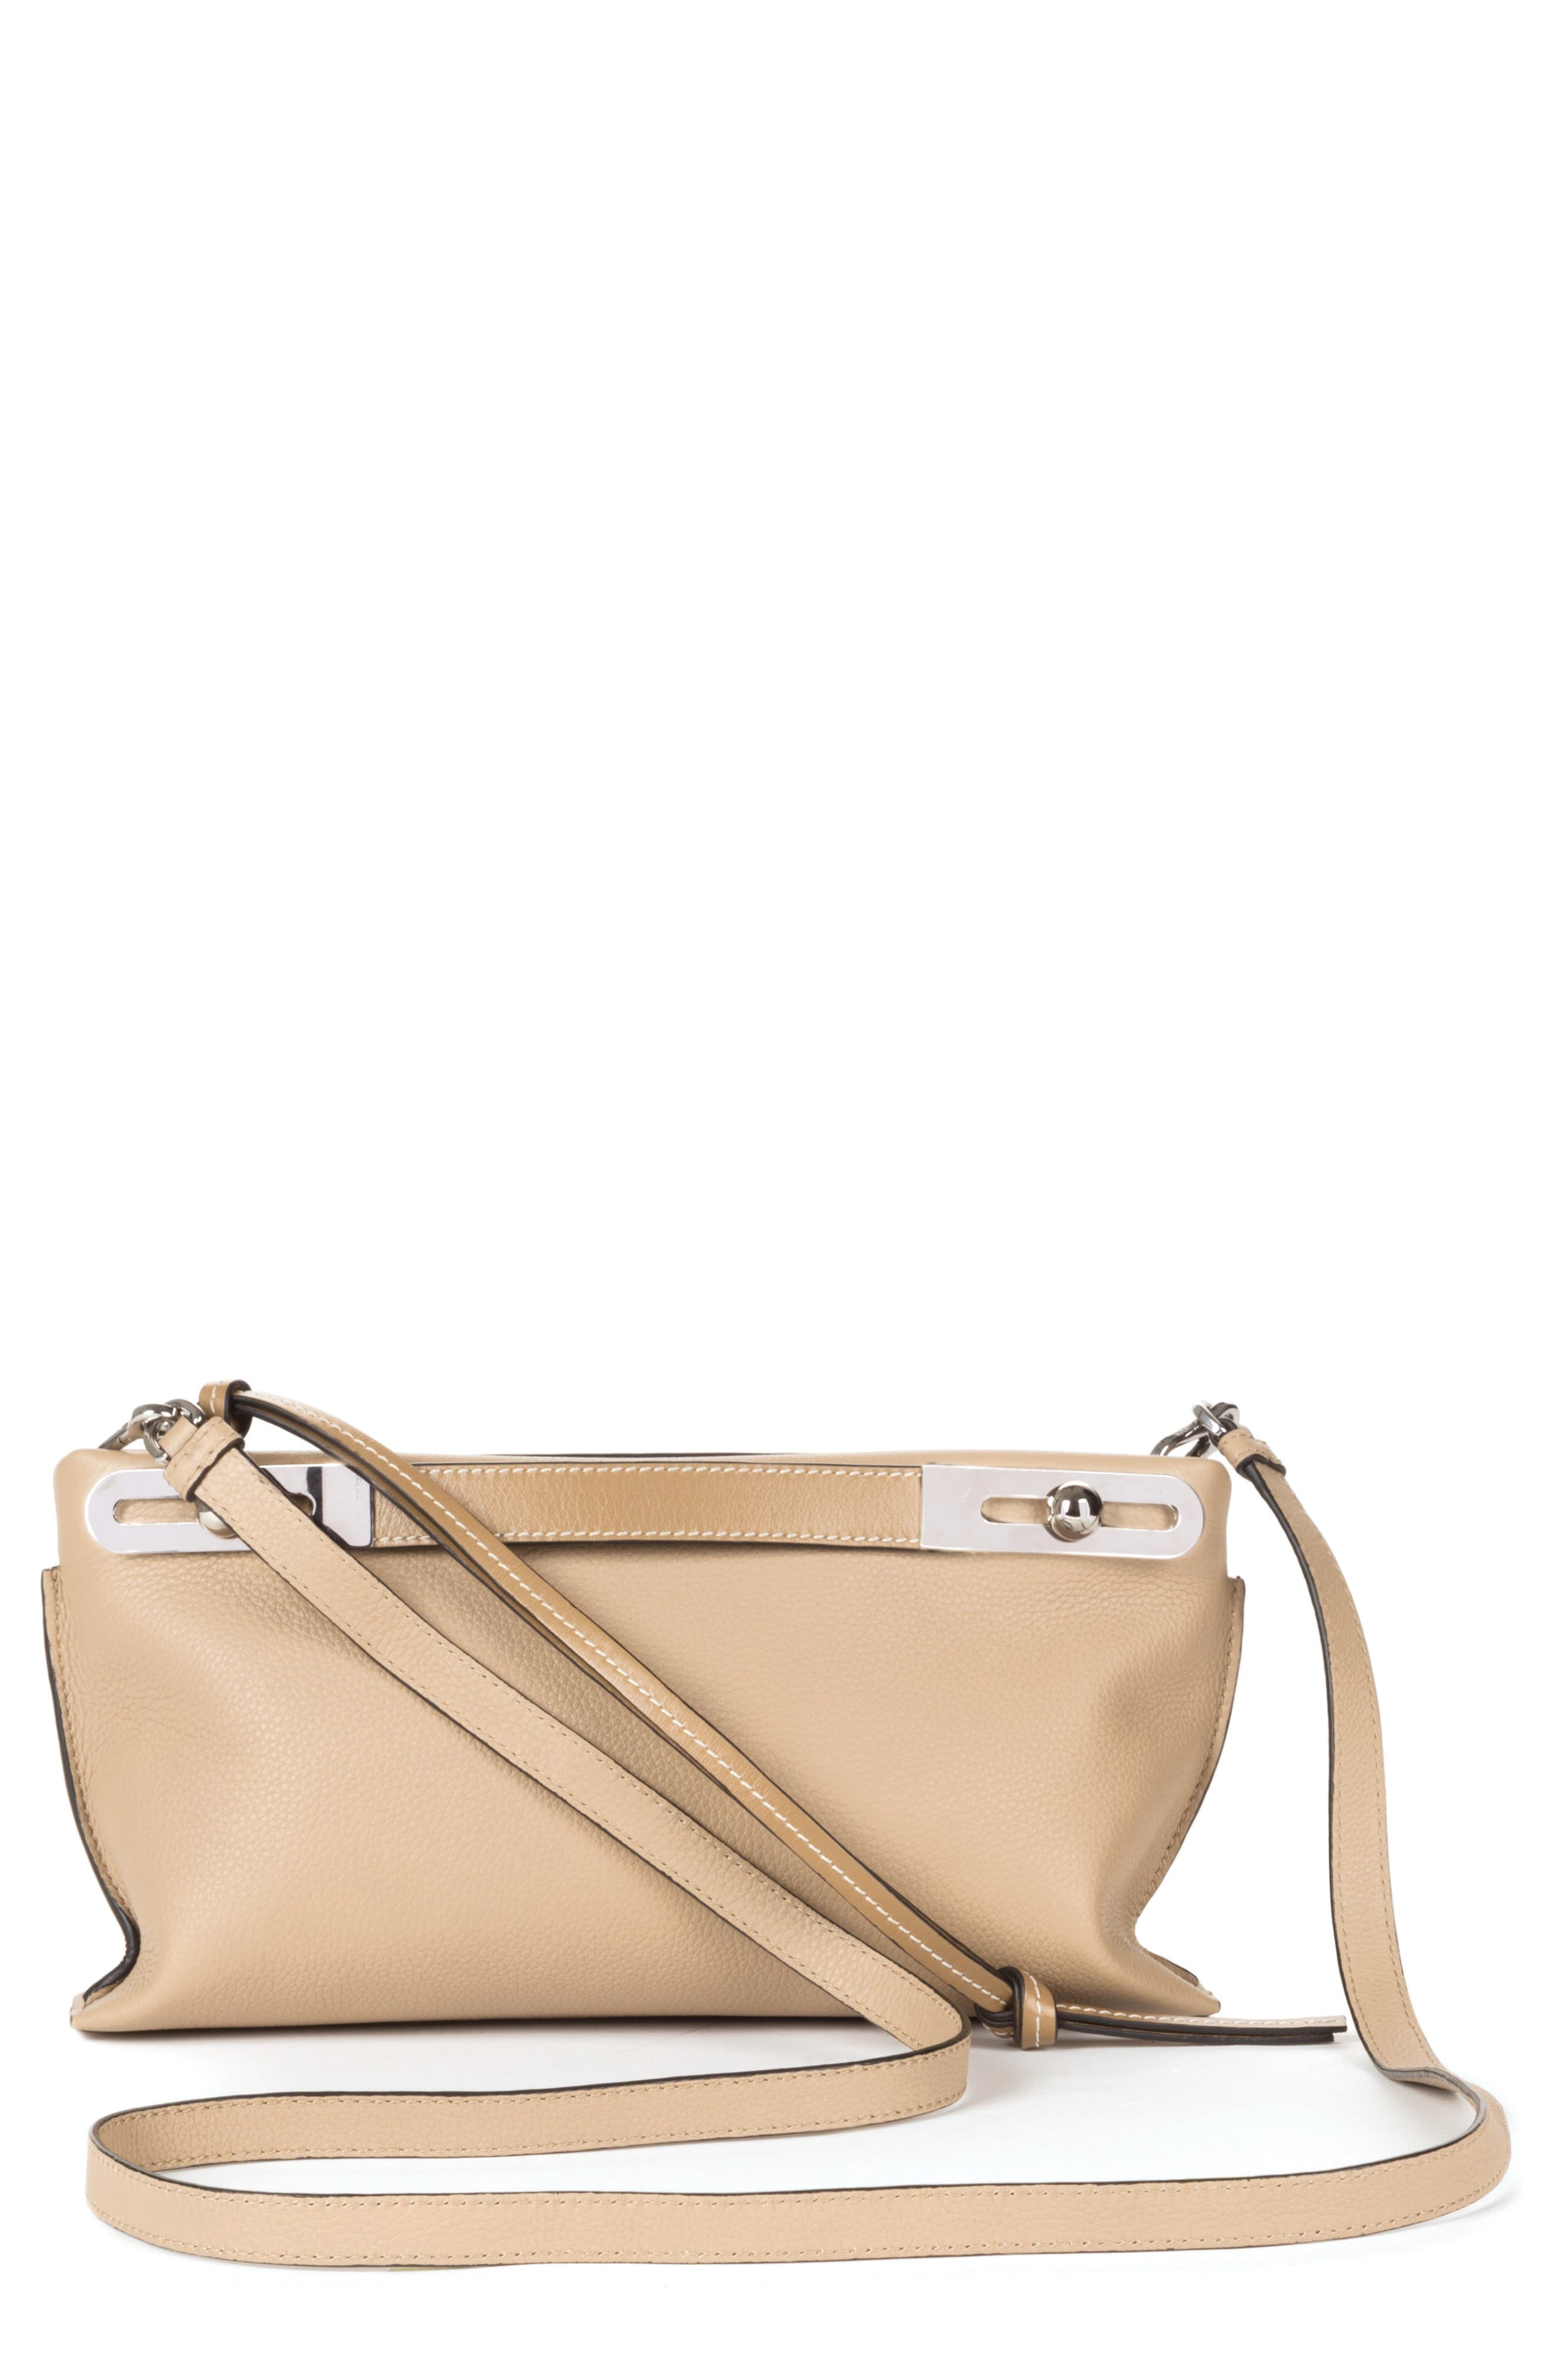 Small Missy Leather Crossbody Bag,                         Main,                         color, Sand/ Mink